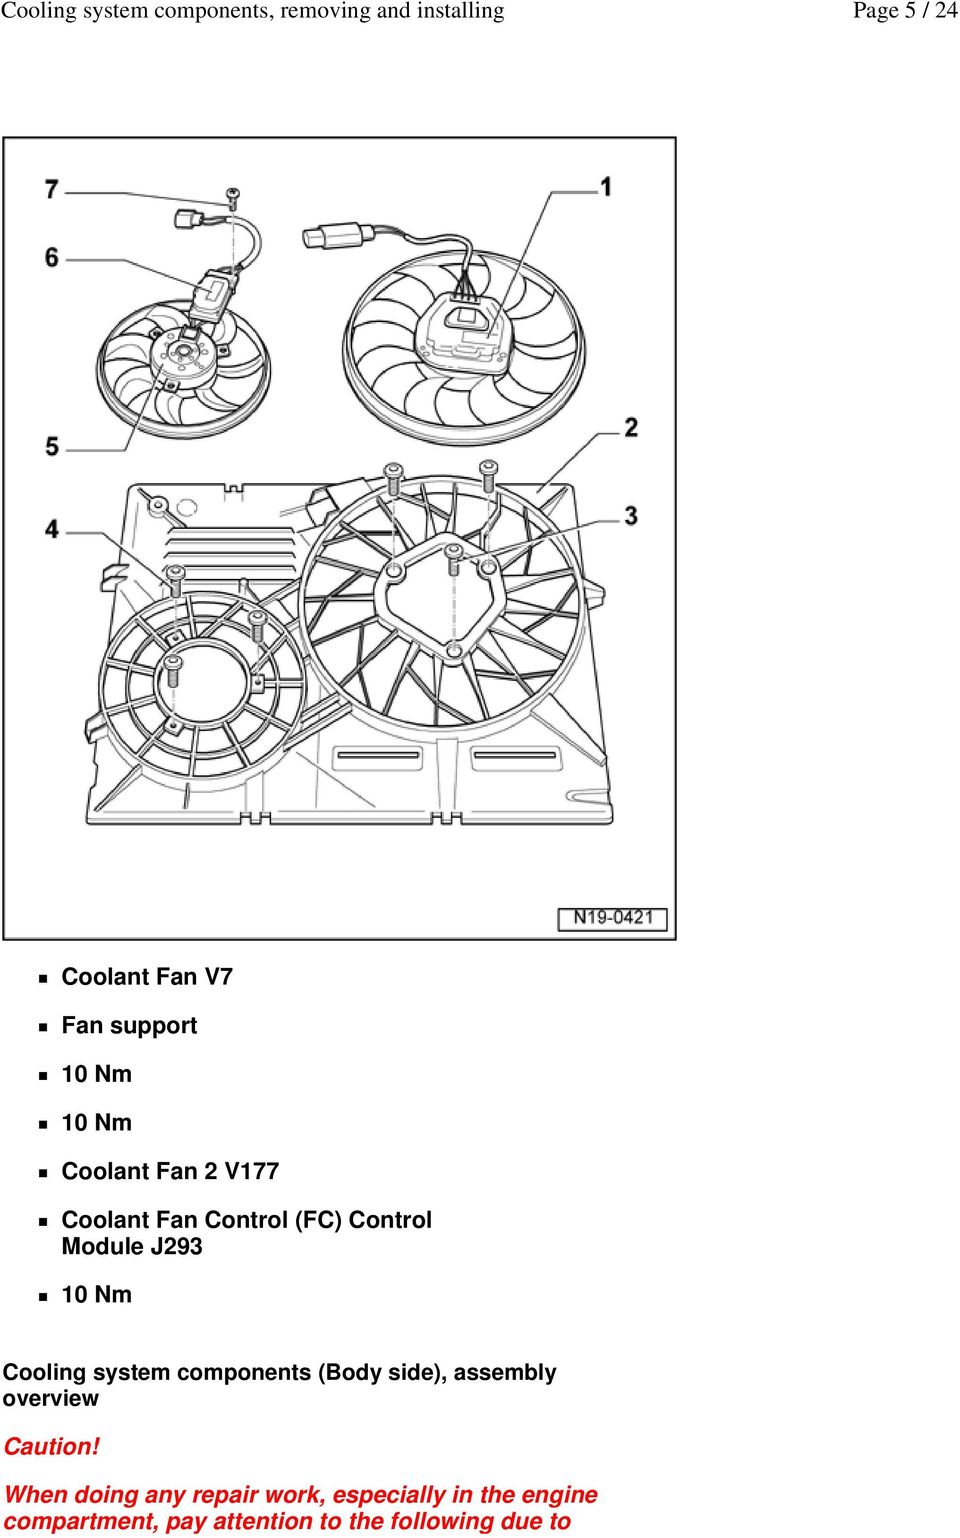 components (Body side), assembly overview Caution!